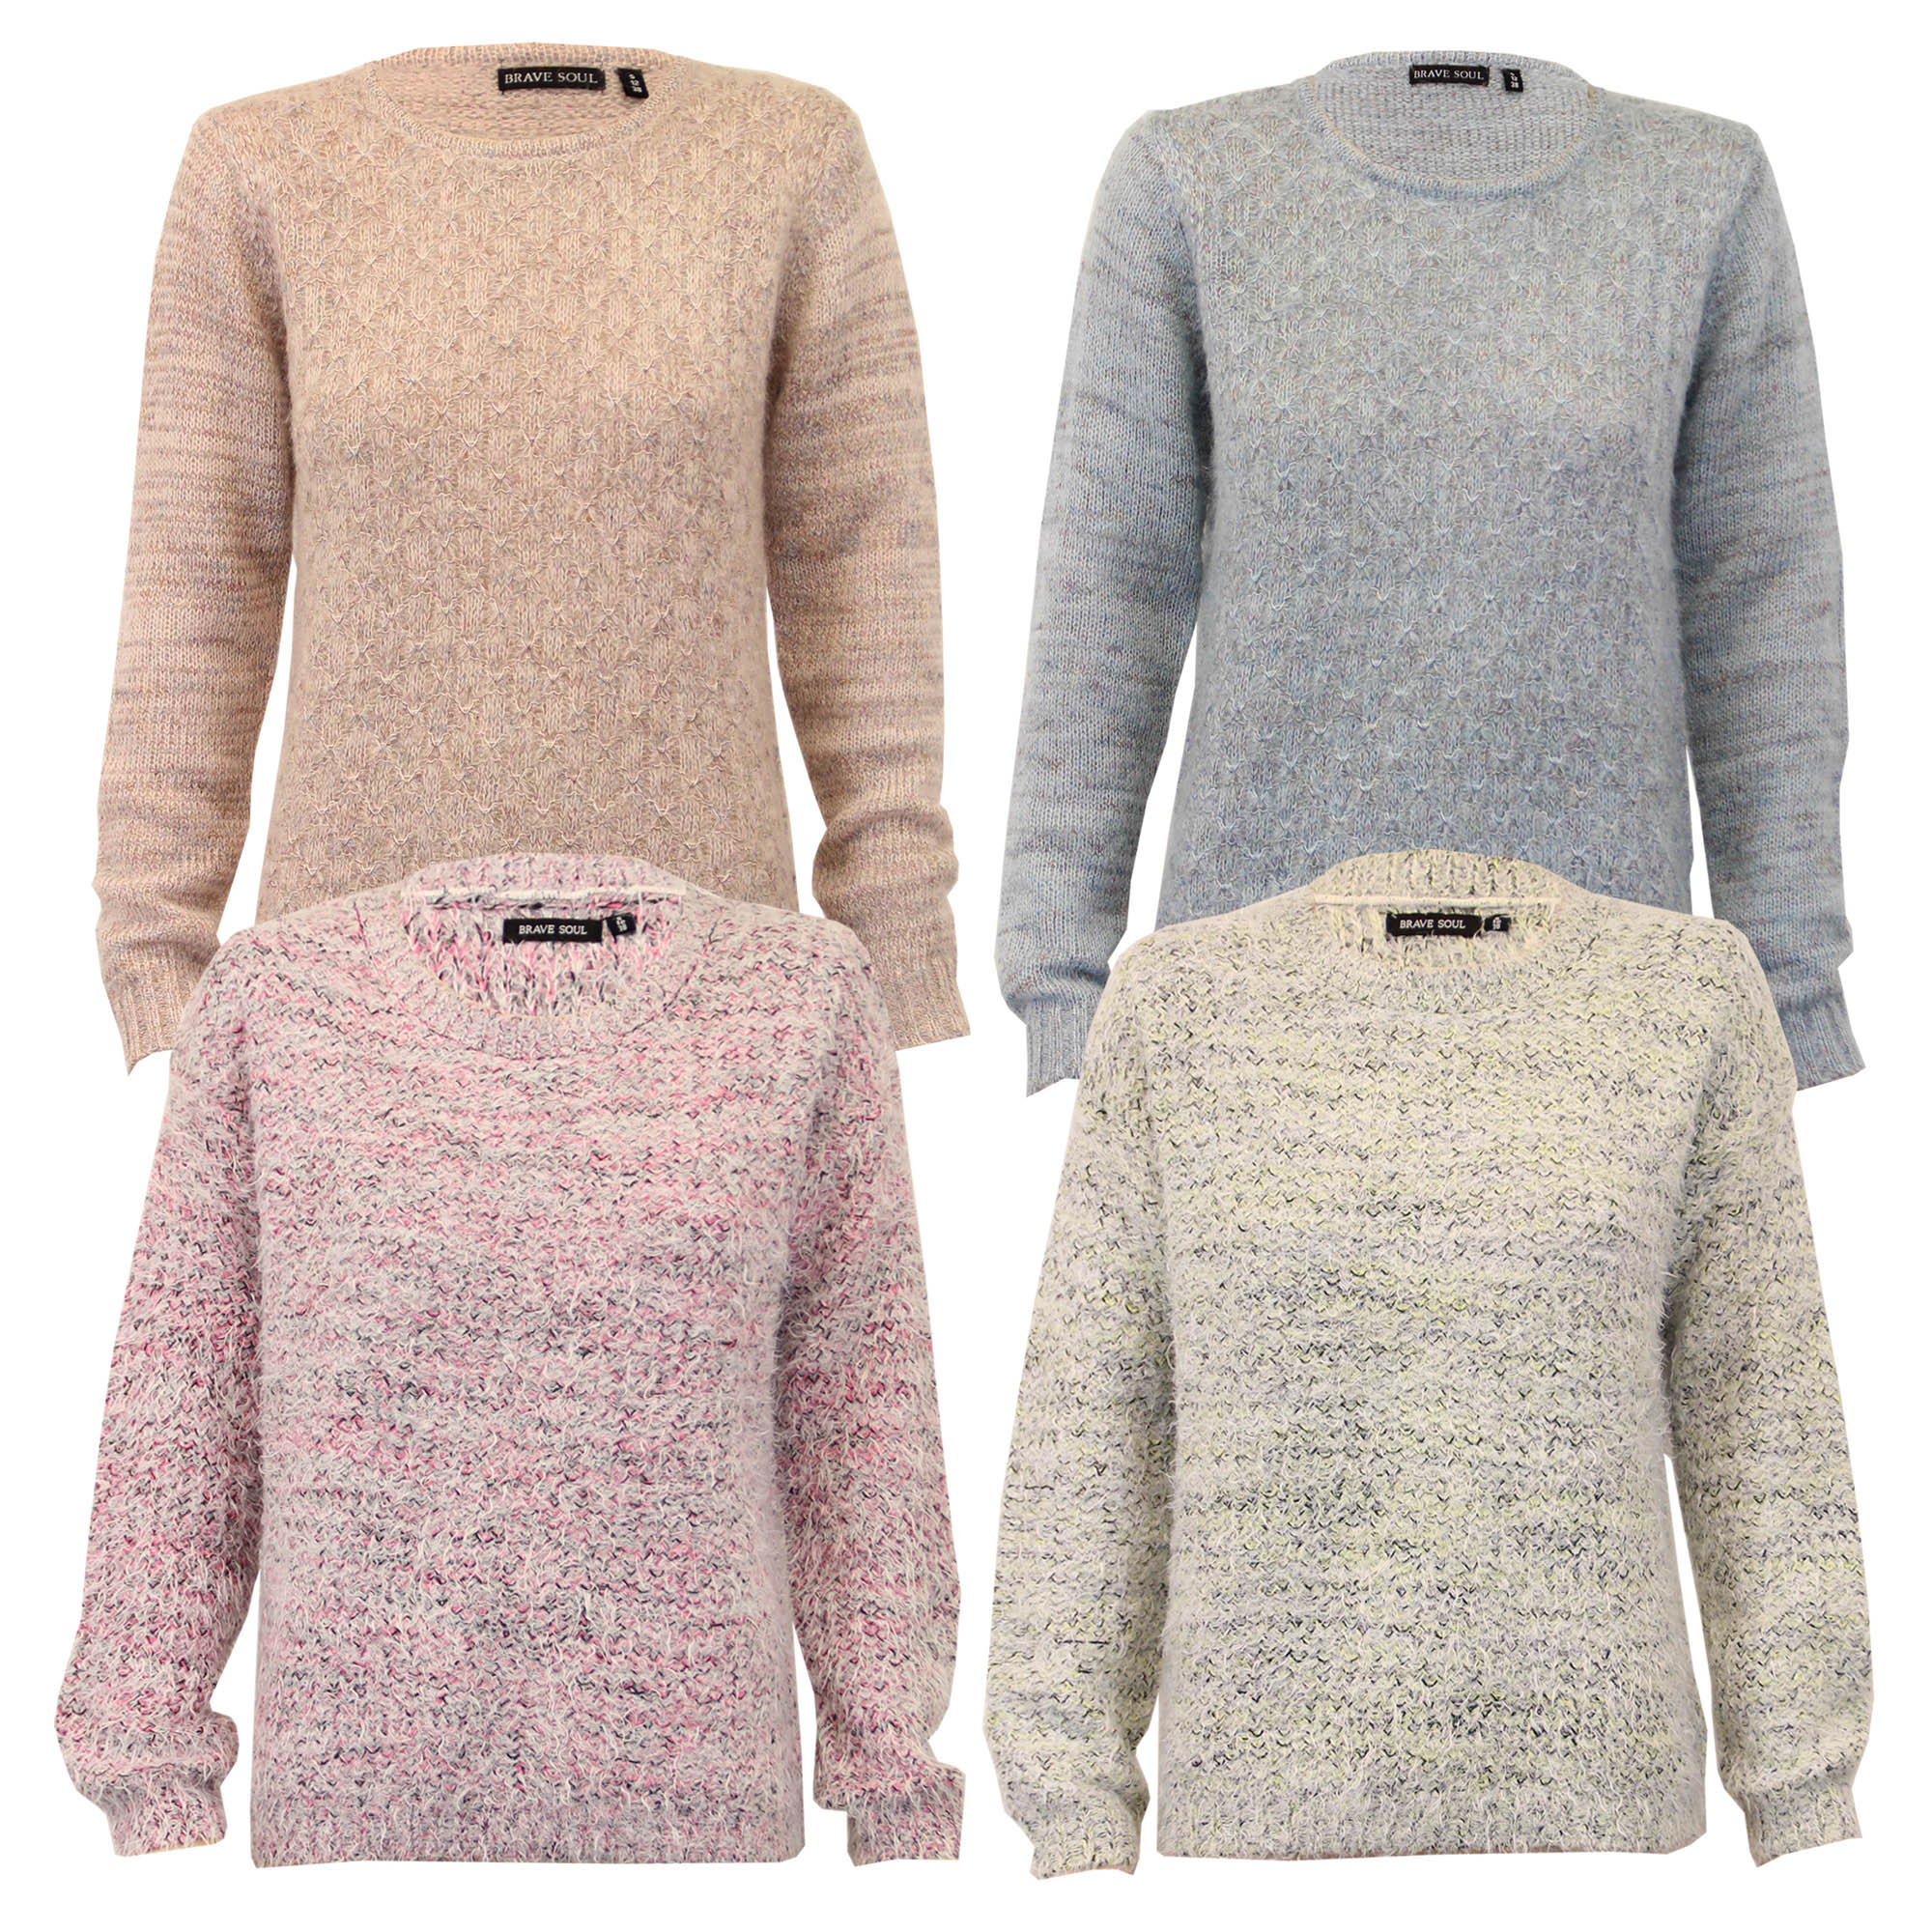 knitted jumpers ladies-mohair-jumper-brave-soul-womens-knitted-sweater- wxwnbck